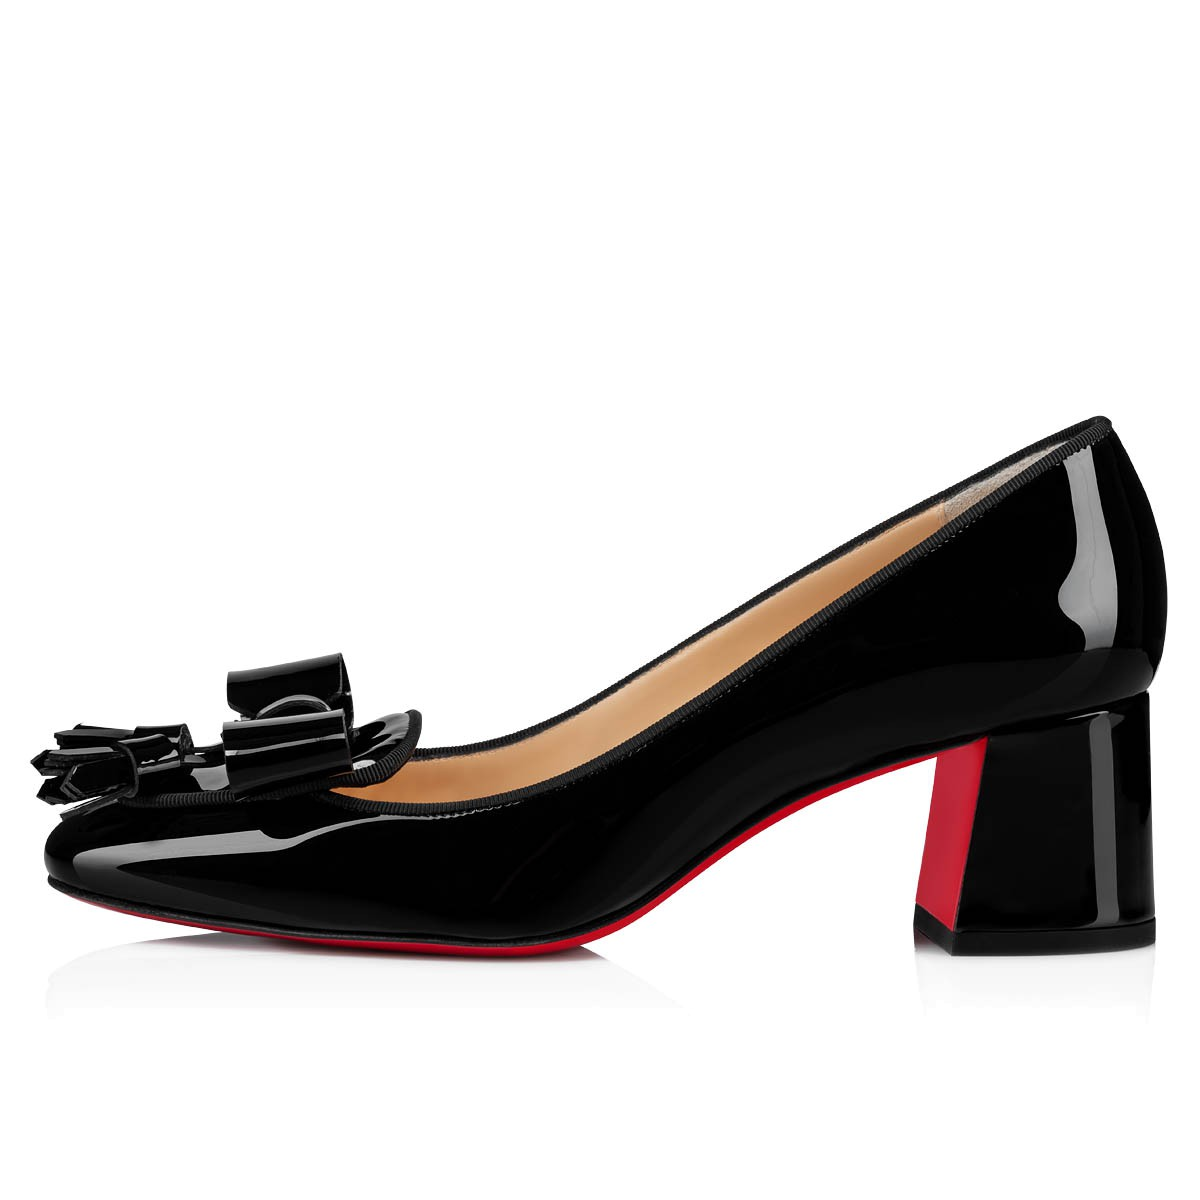 Shoes - Carmela Pump - Christian Louboutin